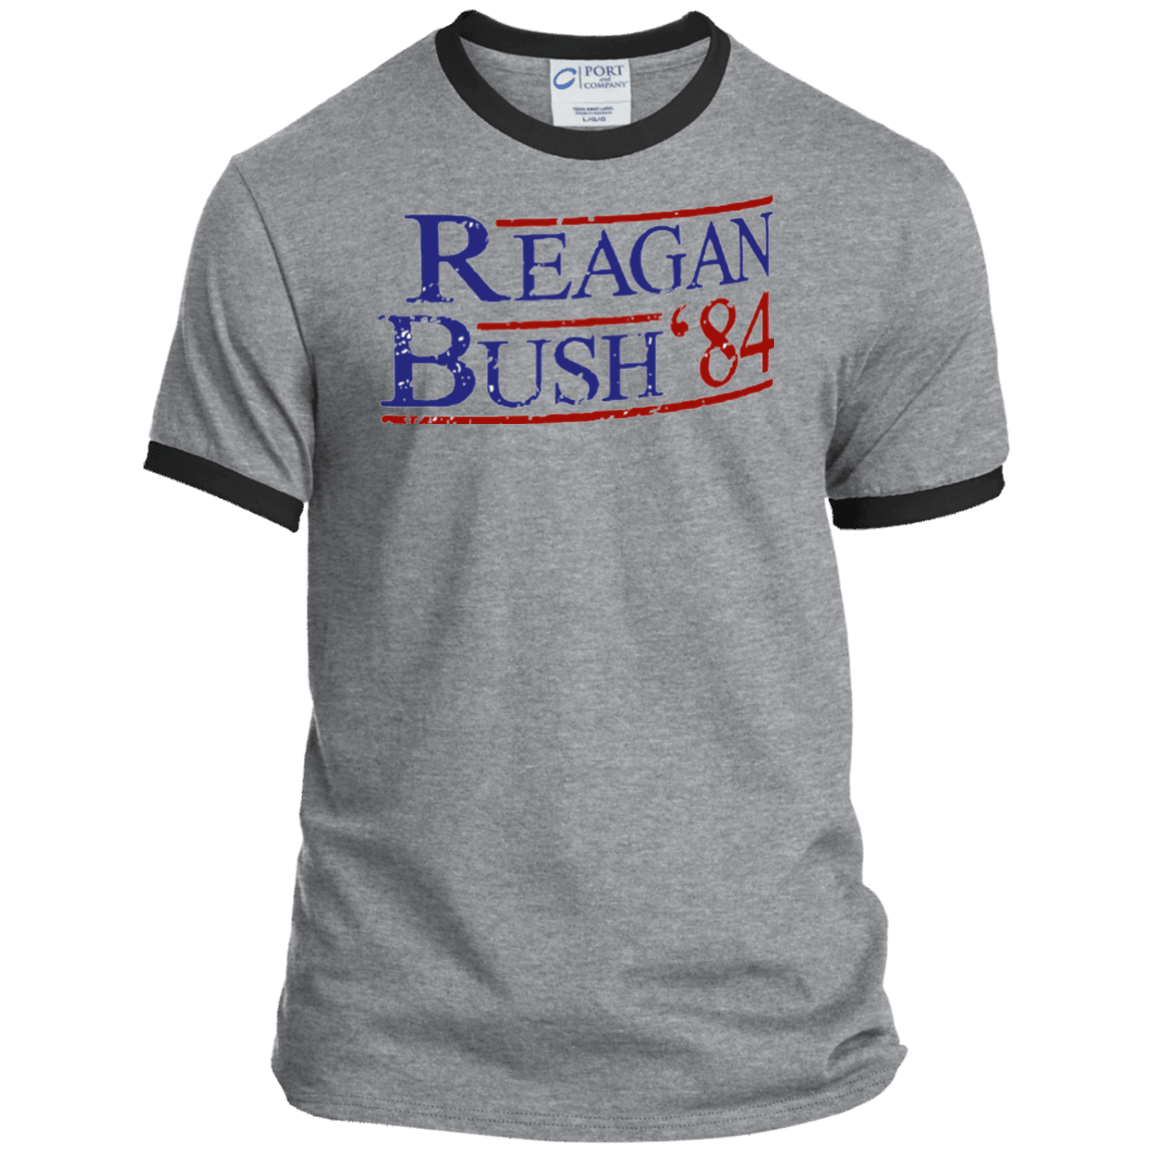 84 Reagan Bush Ringer Tee Shirt - Generation T